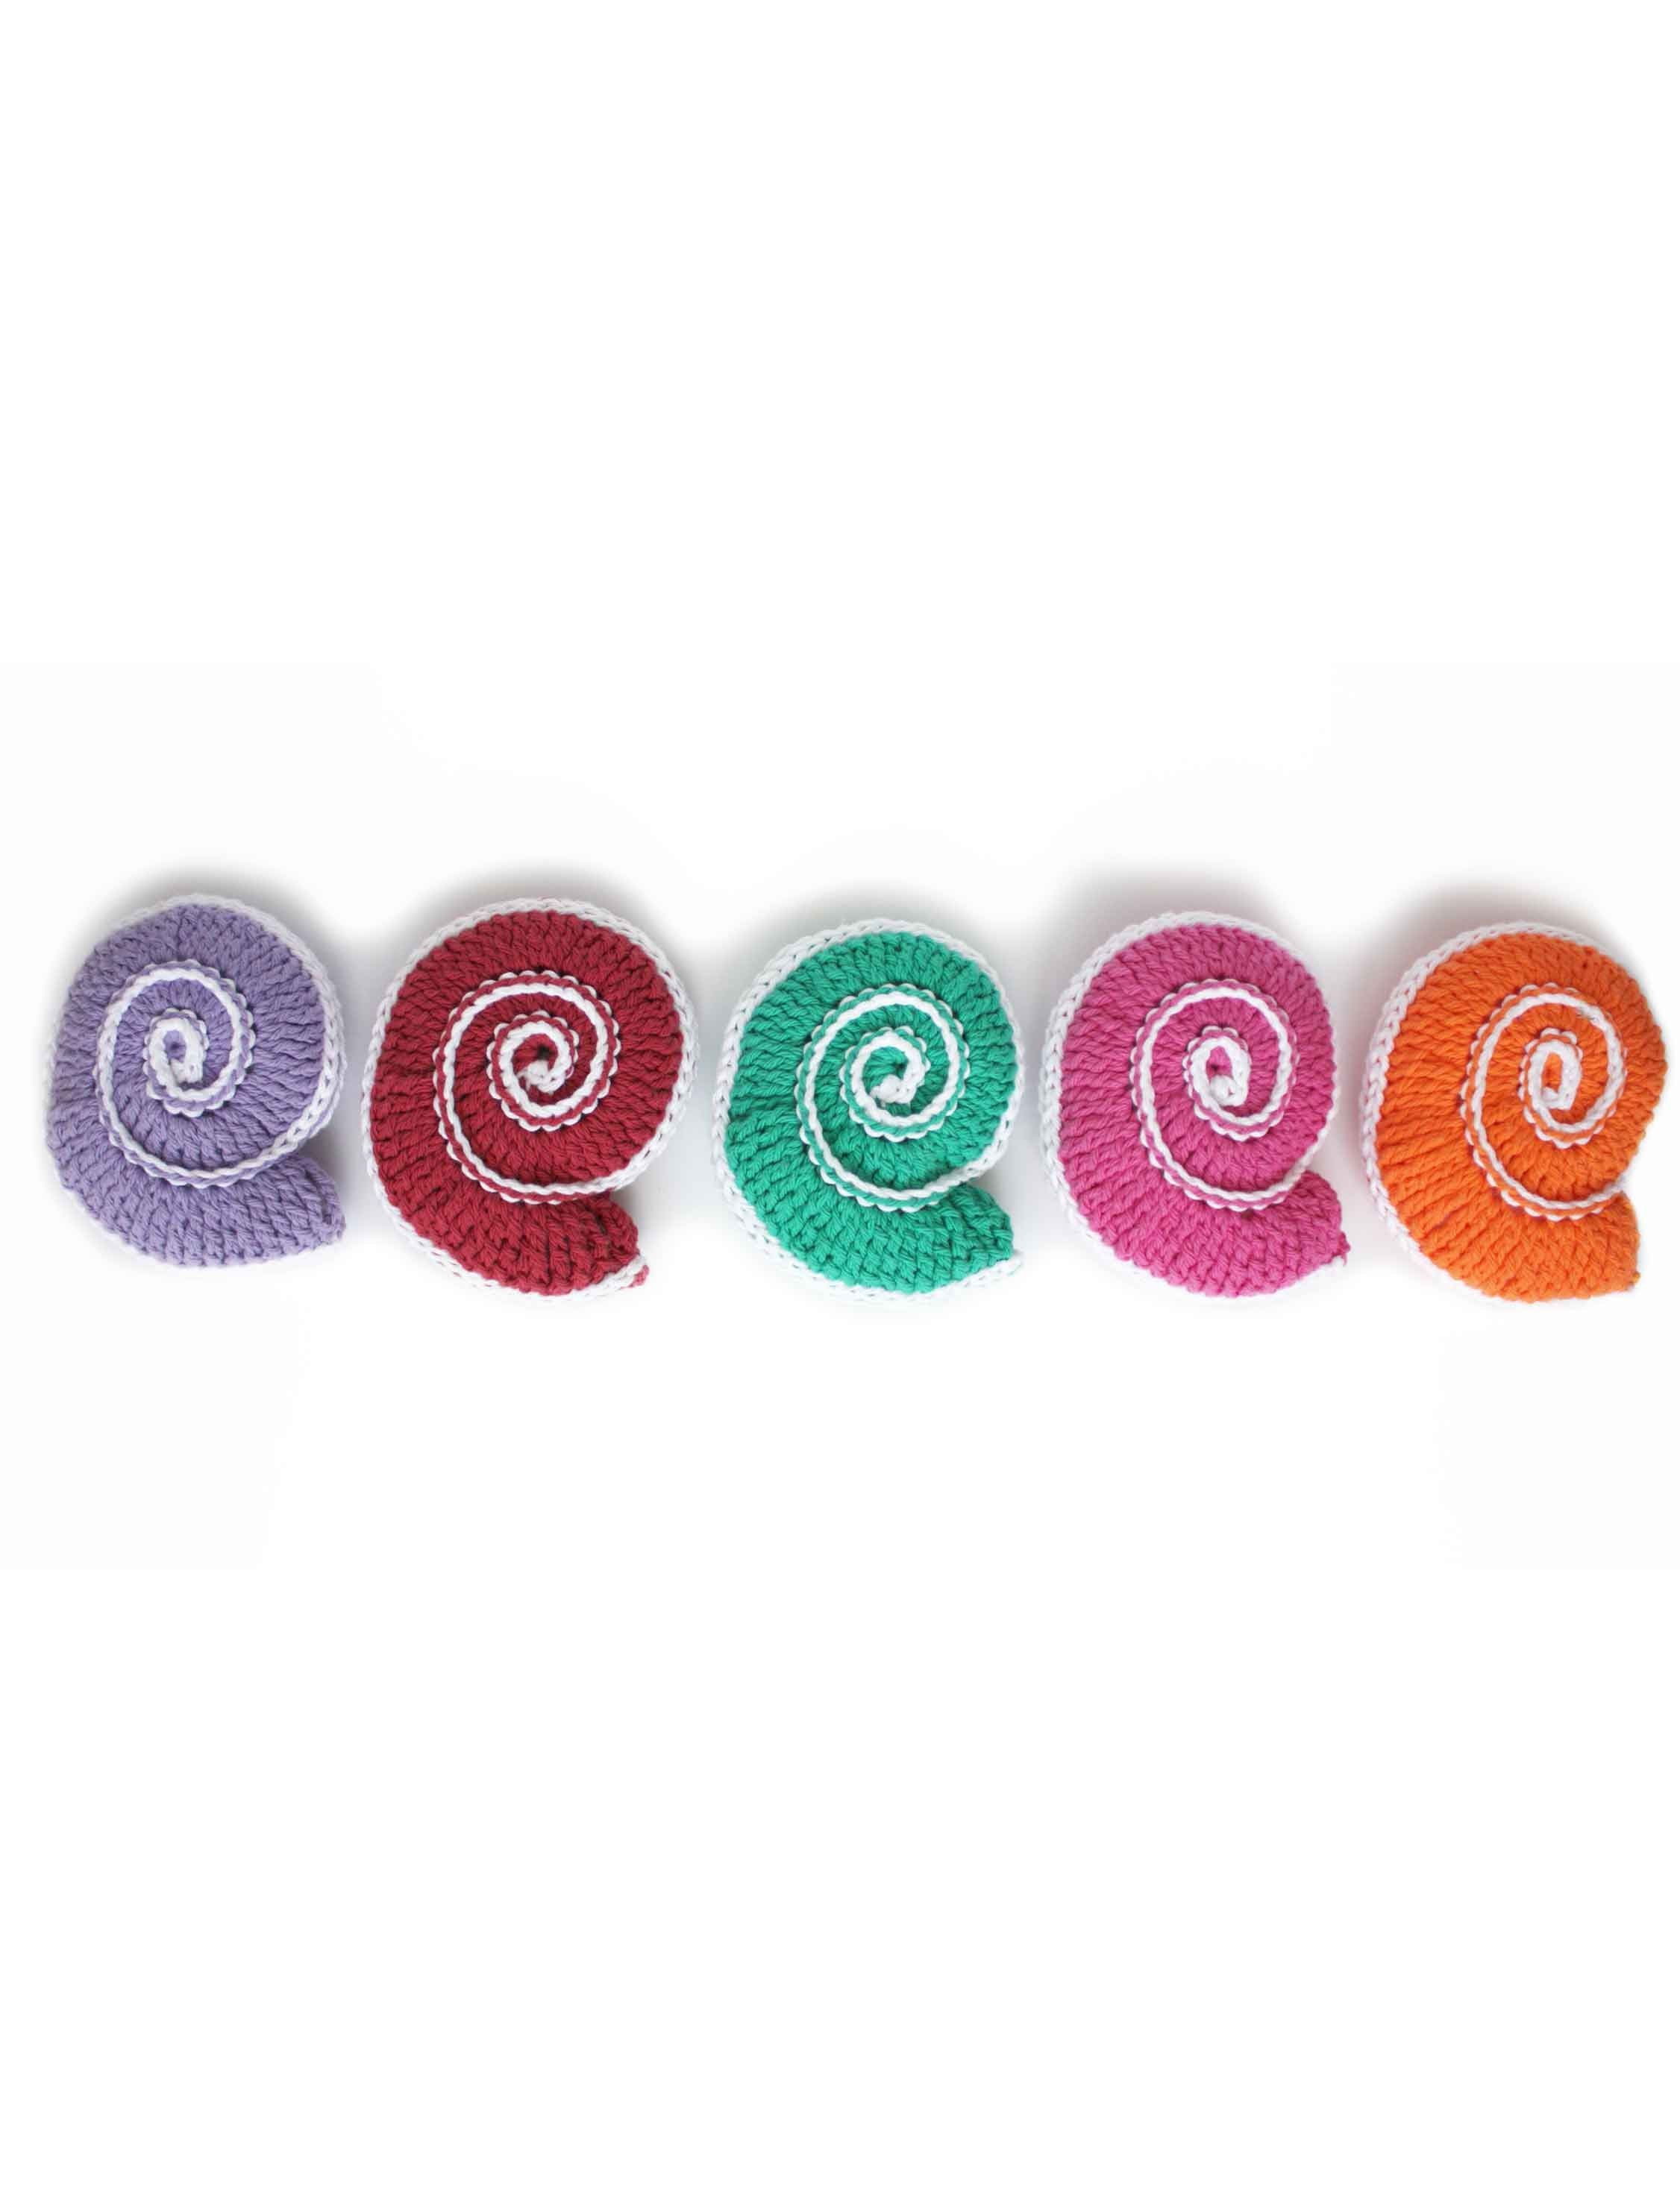 Yarnspirations.com - Lily Spiral Shell - Patterns | Yarnspirations ...